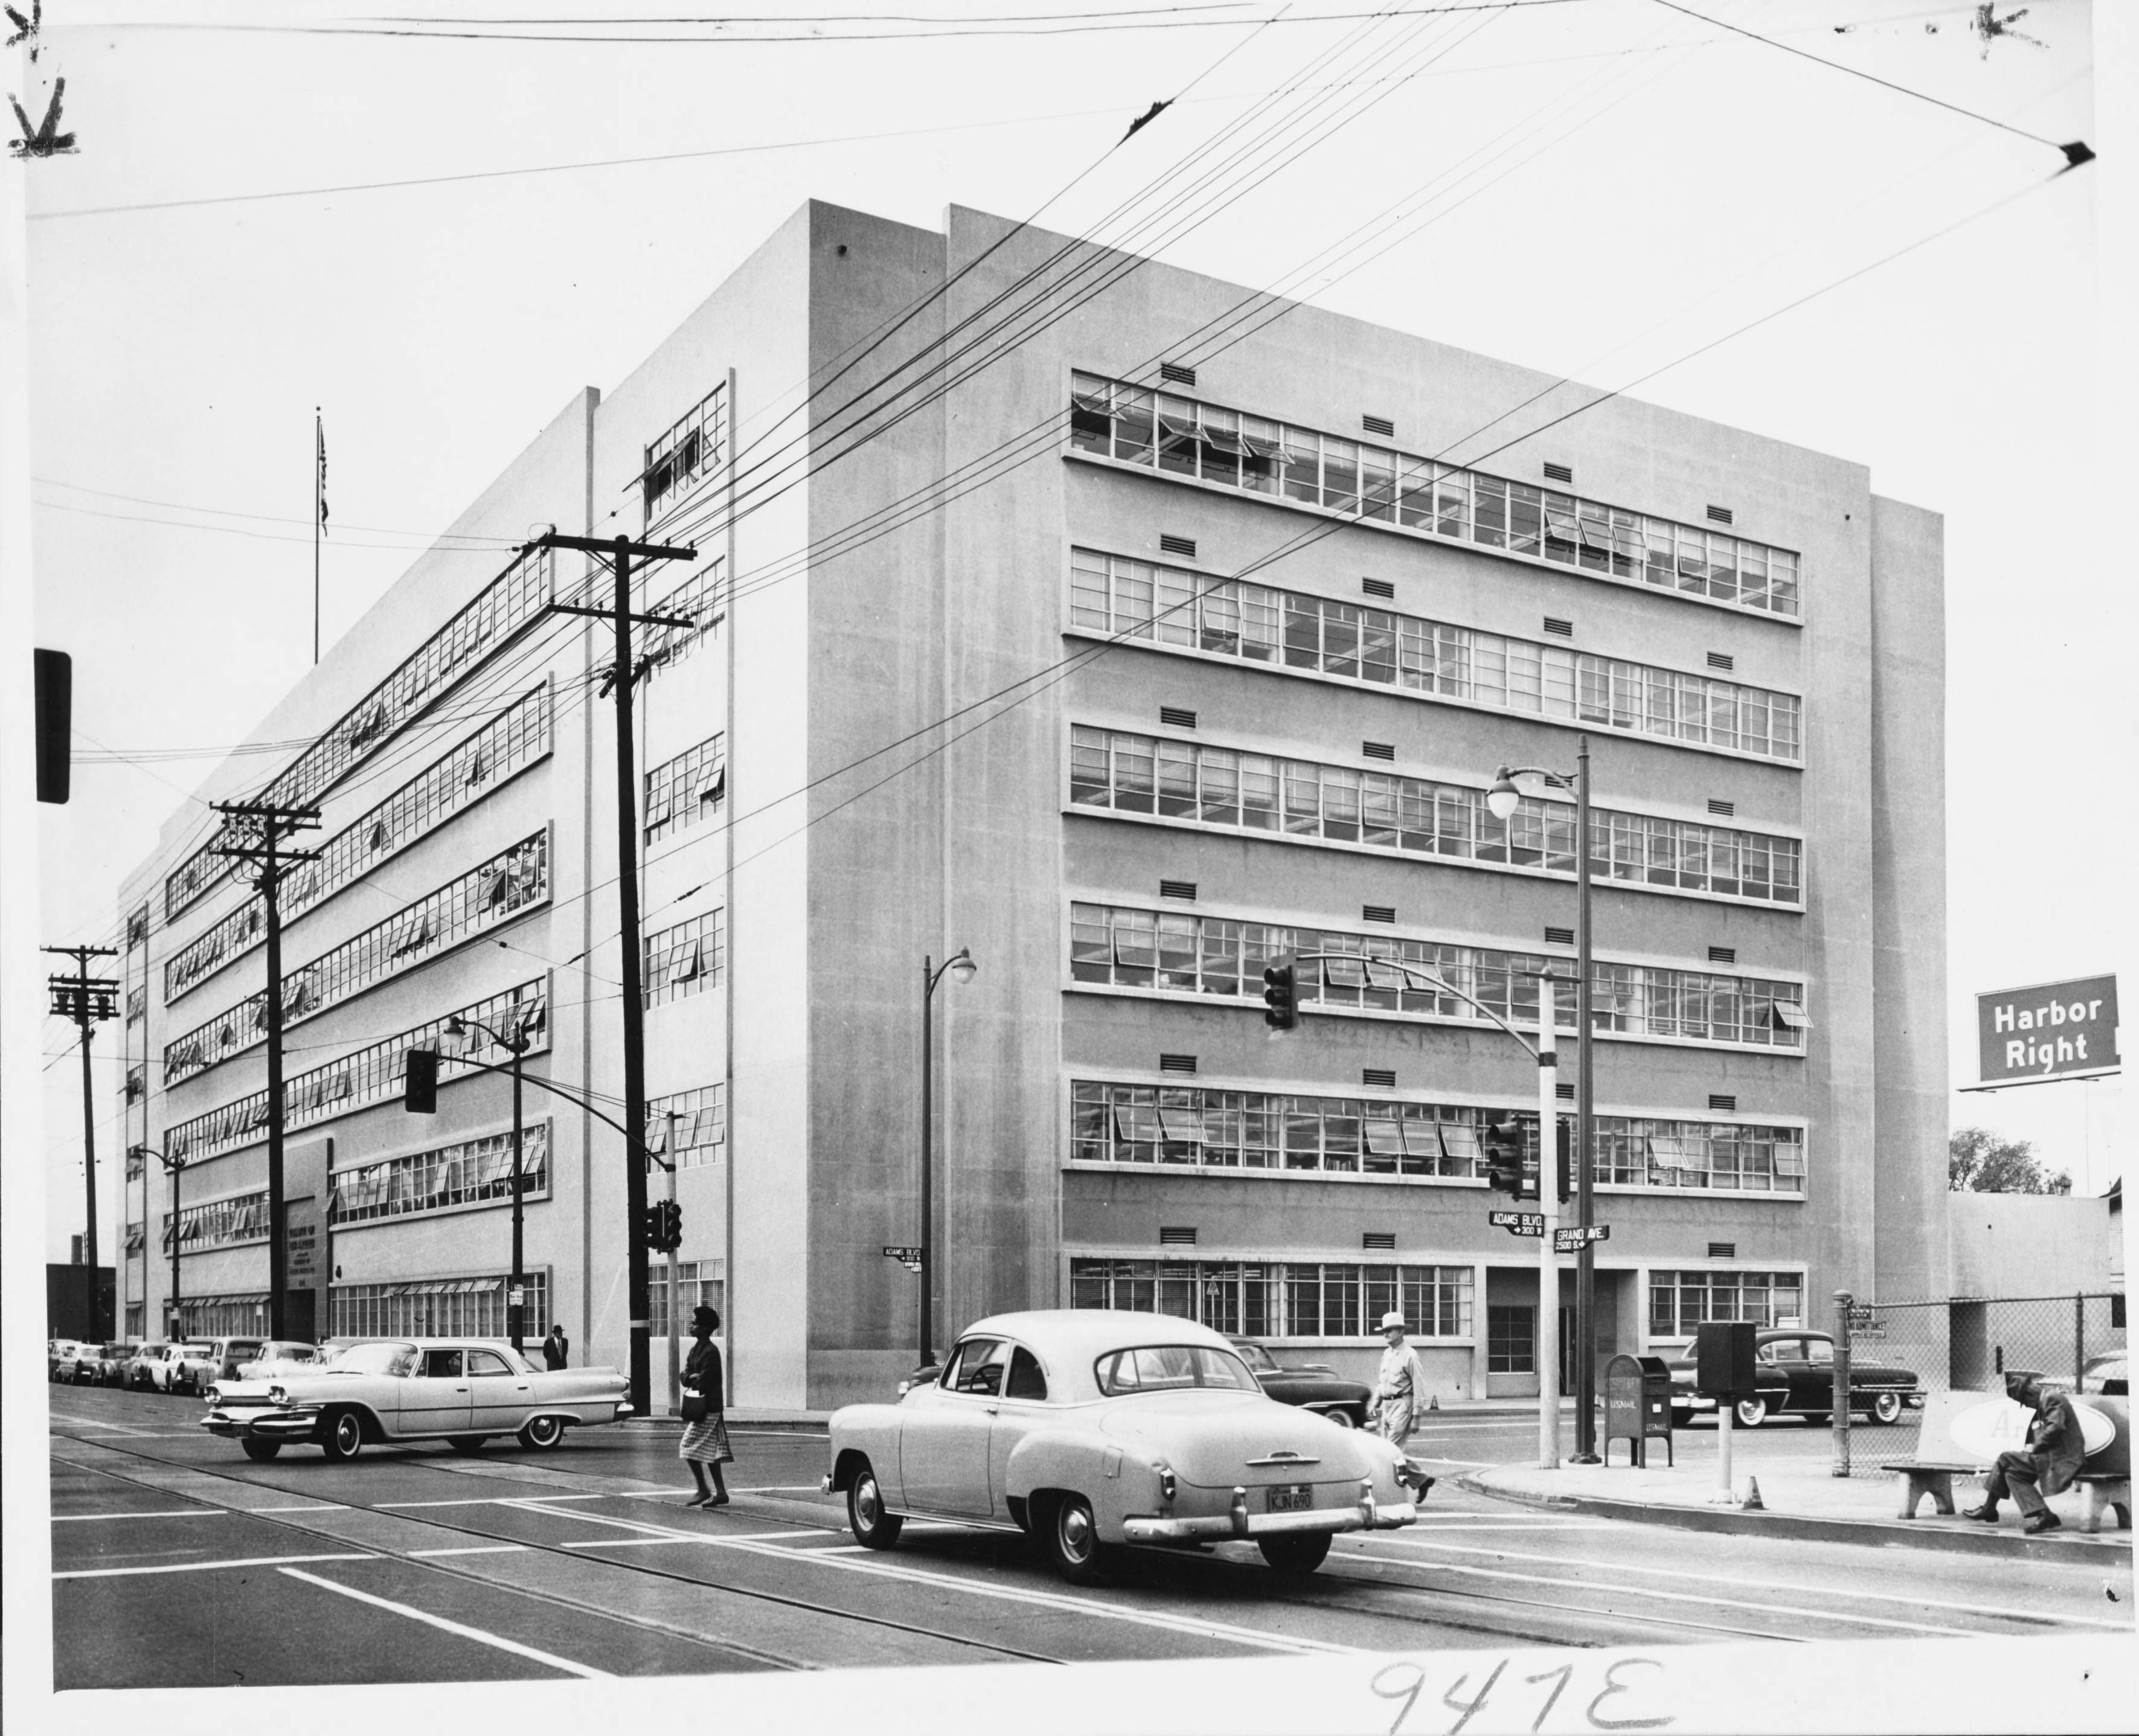 Welfare Building 2615 S Grand Ave Los Angeles 1959 Photograph 20 000 Per Month The Board Of Supervisors Vintage Los Angeles Los Angeles La History